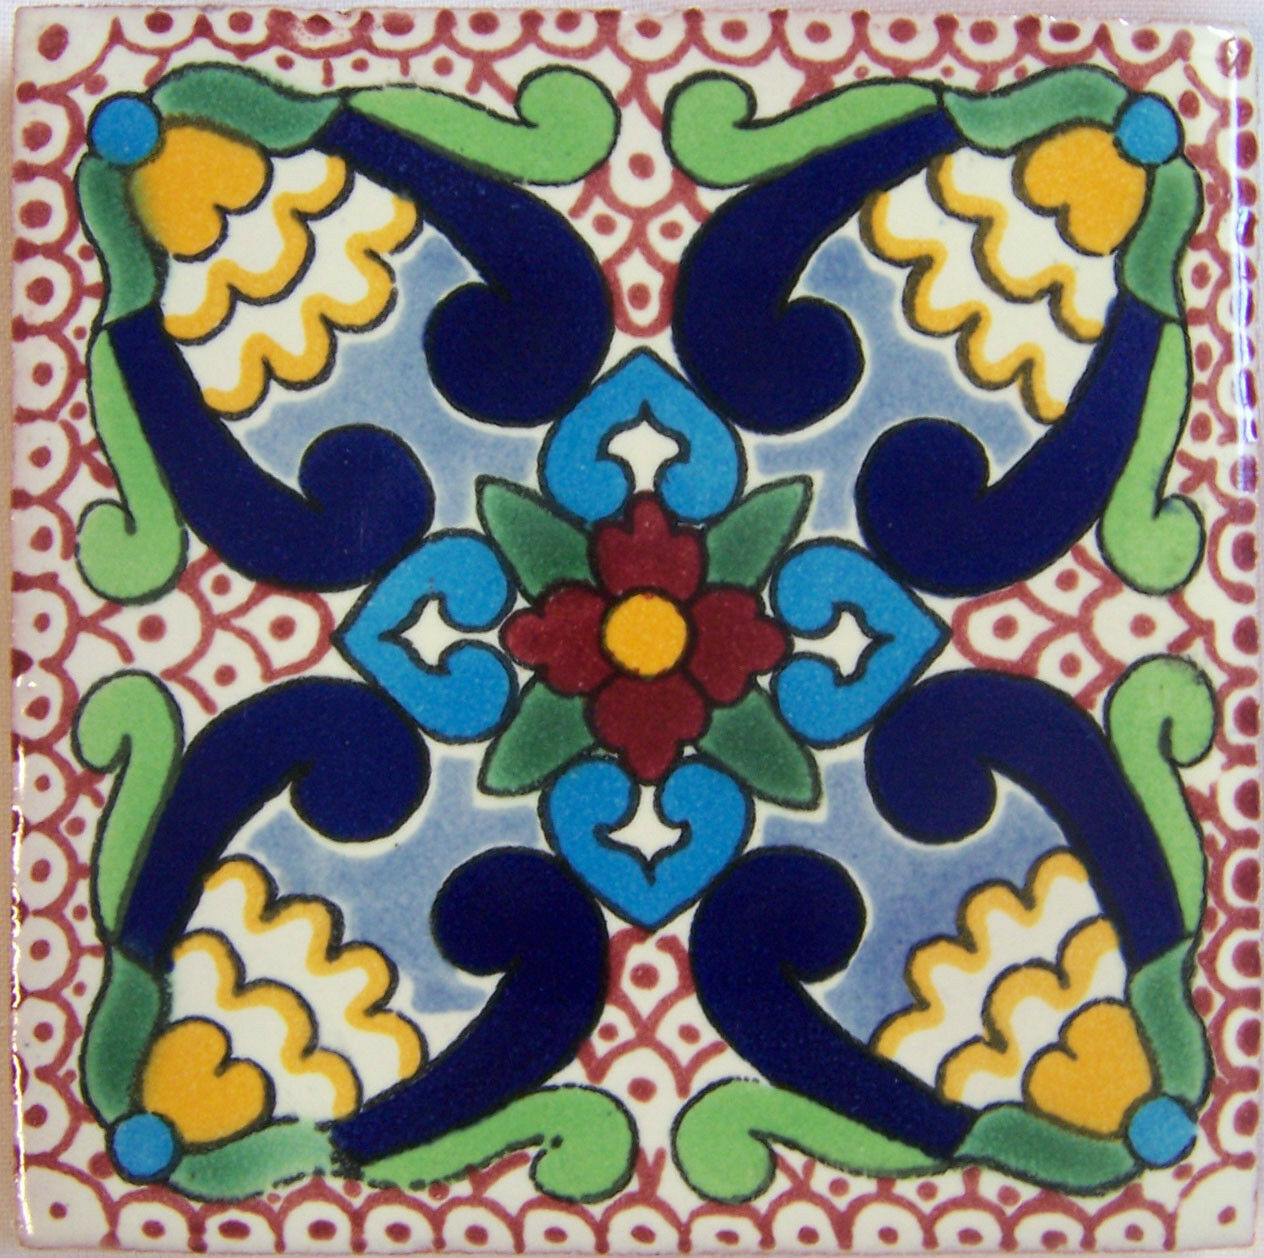 C306 - Mexican Handmade Talavera Clay Tile Folk Art 4x4